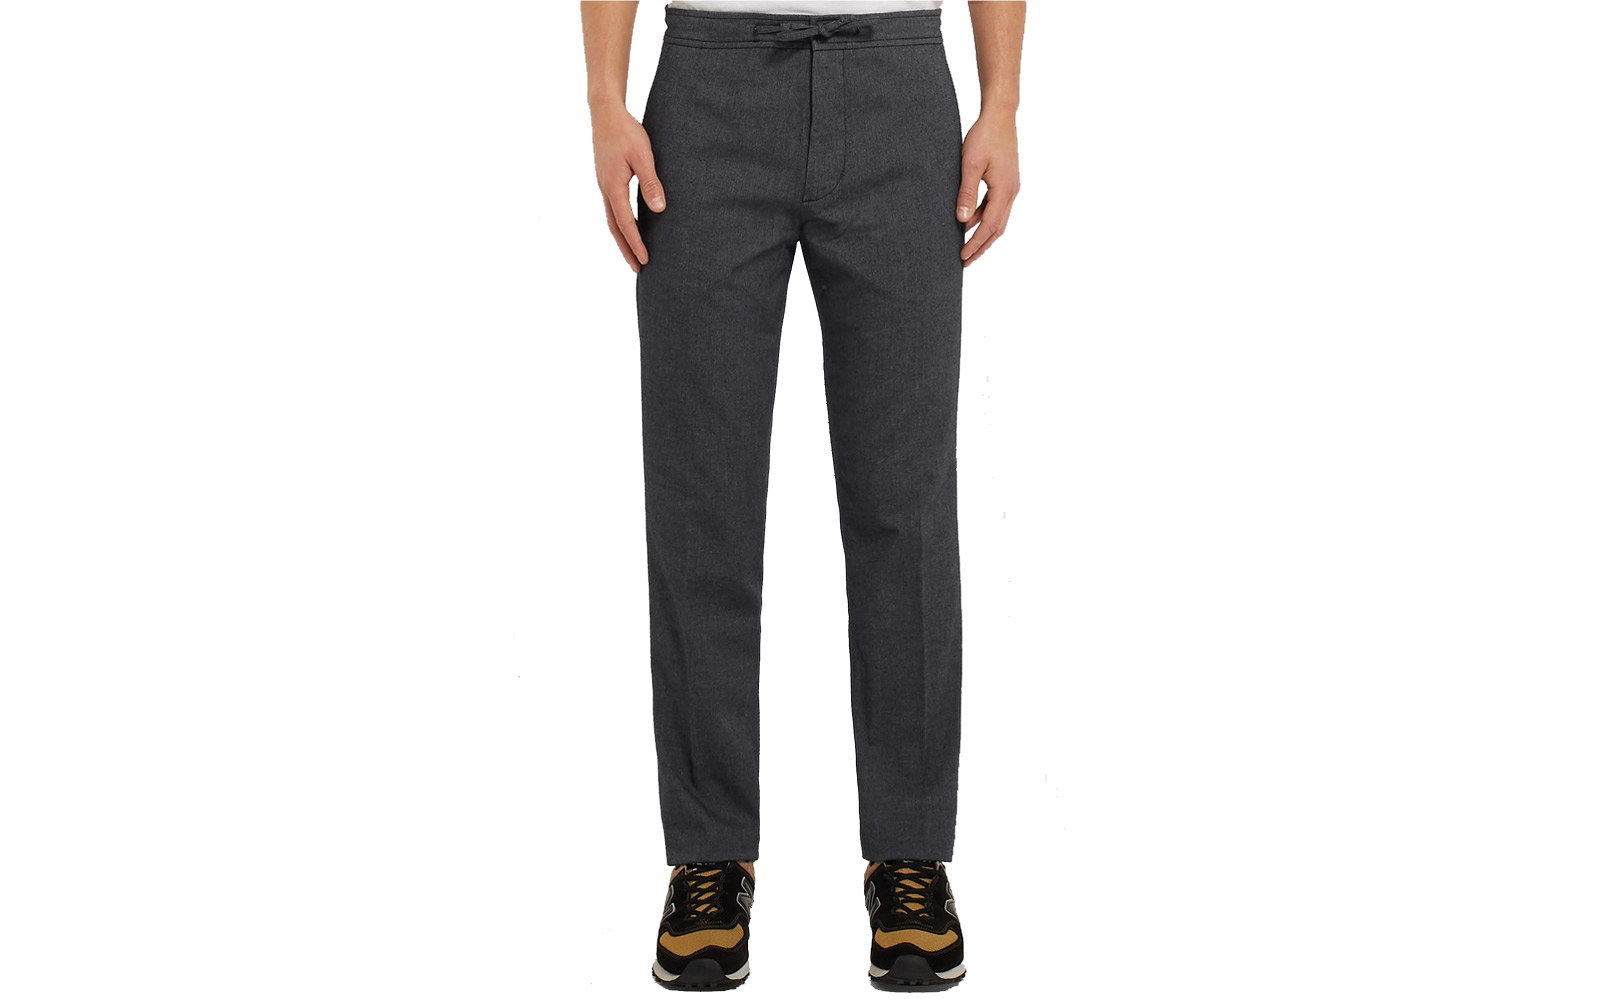 47d533922 Best Sweatpant-in-disguise  NN07 Copenhagen Slim-fit Woven Drawstring  Trousers